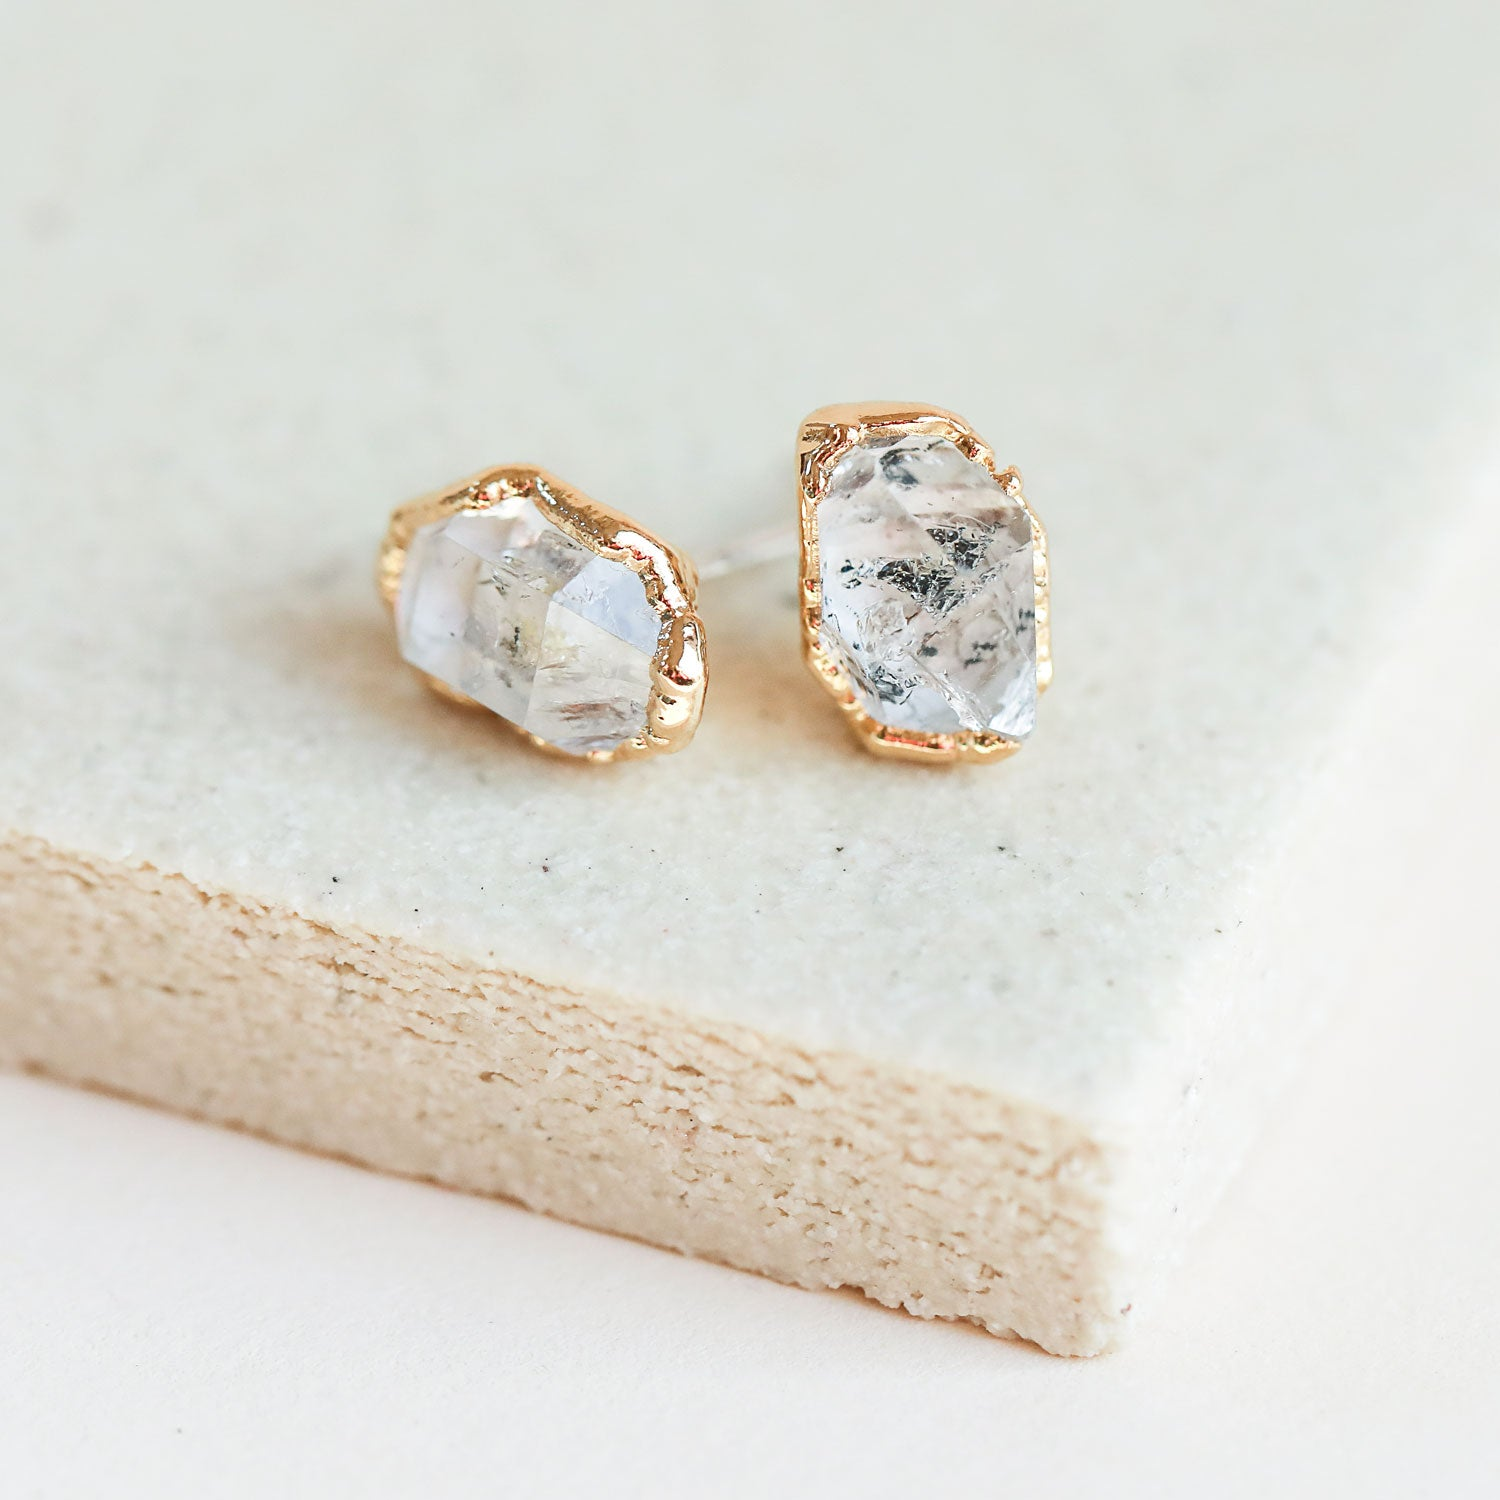 Herkimer Diamond Studs by Dani Barbe